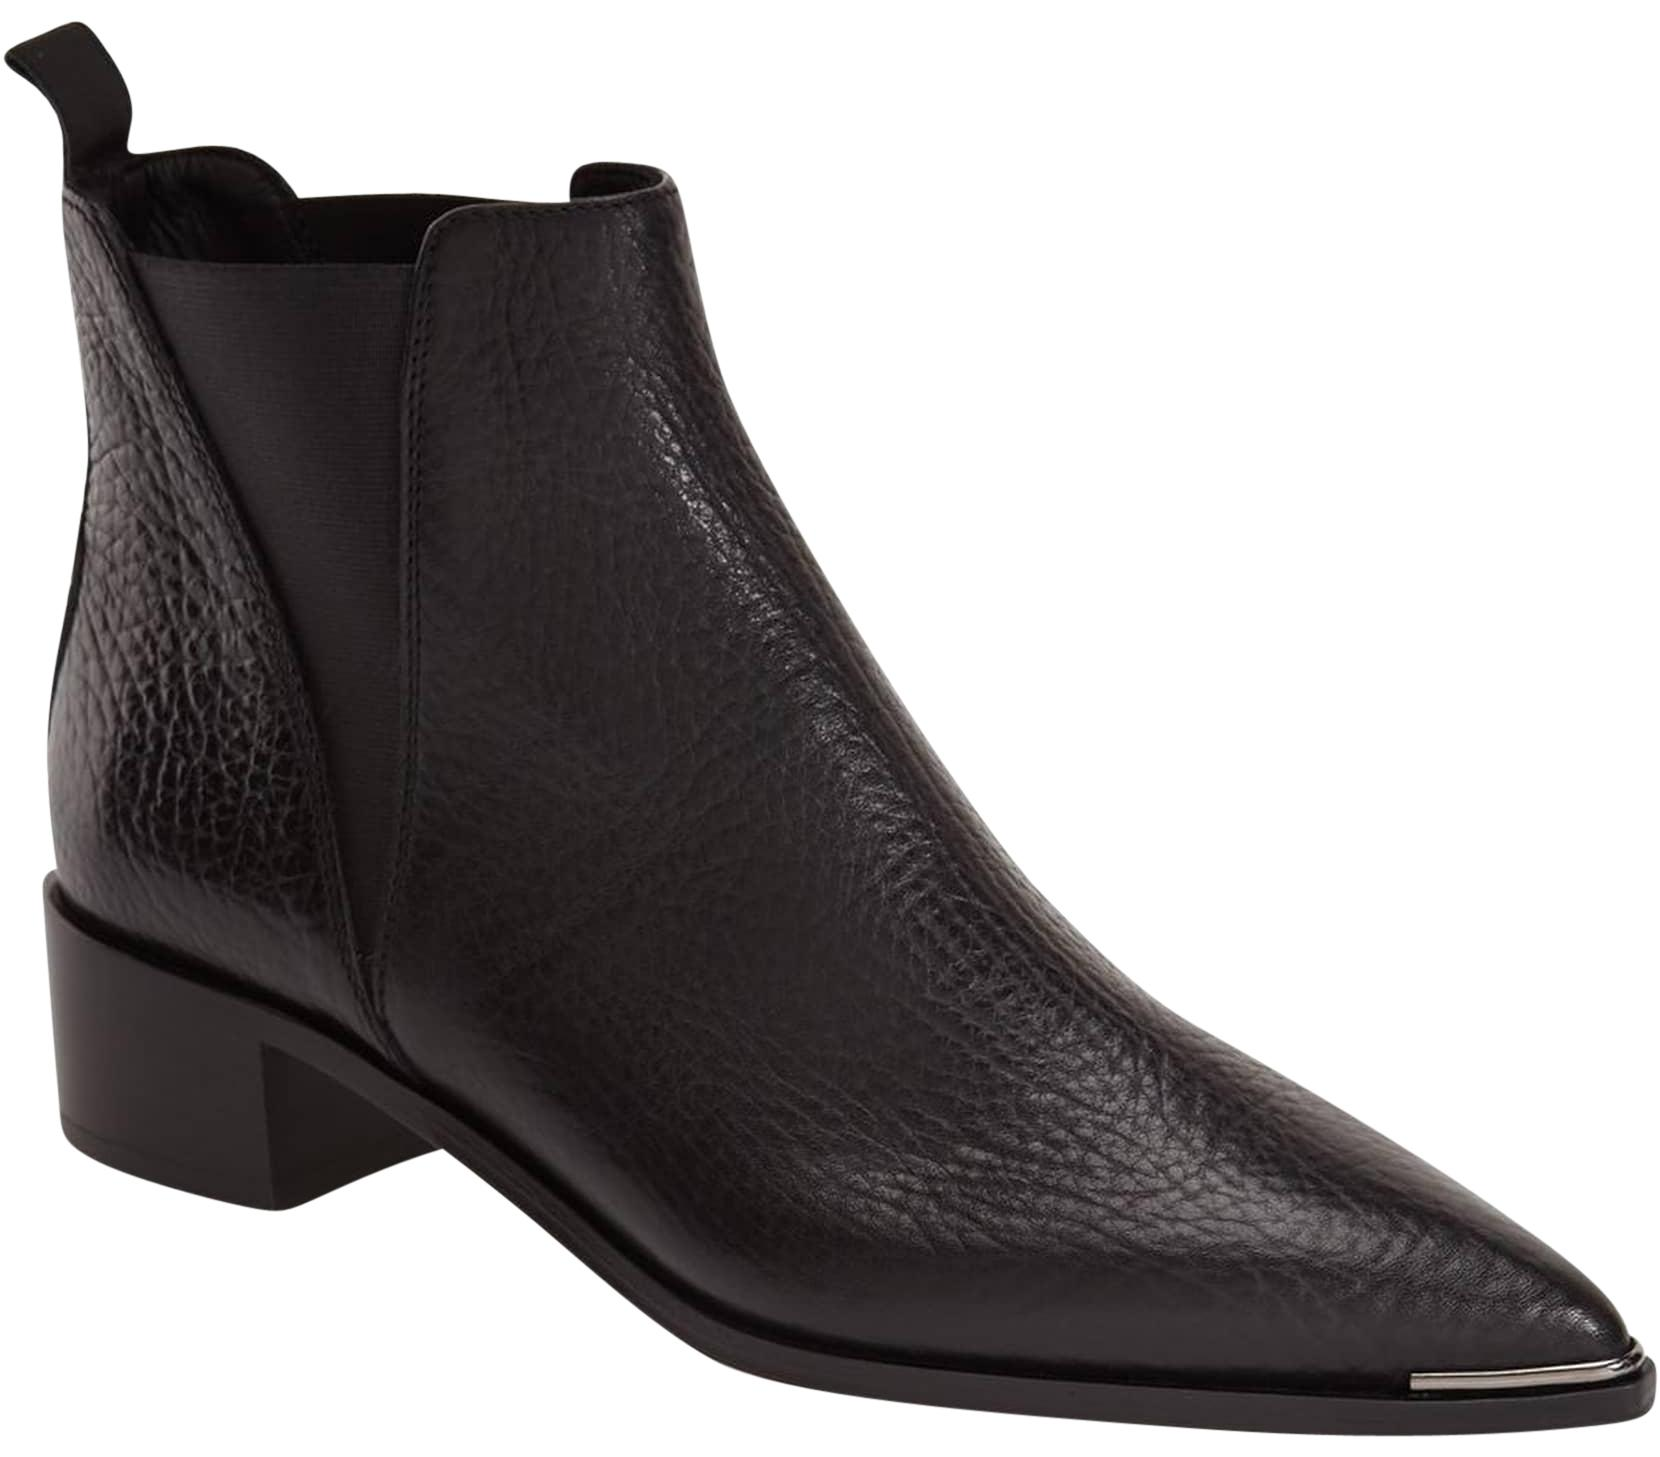 Acne Studios Black Jensen Leather Ankle Pointy 35 Boots/Booties Size US 5 Regular (M, B)